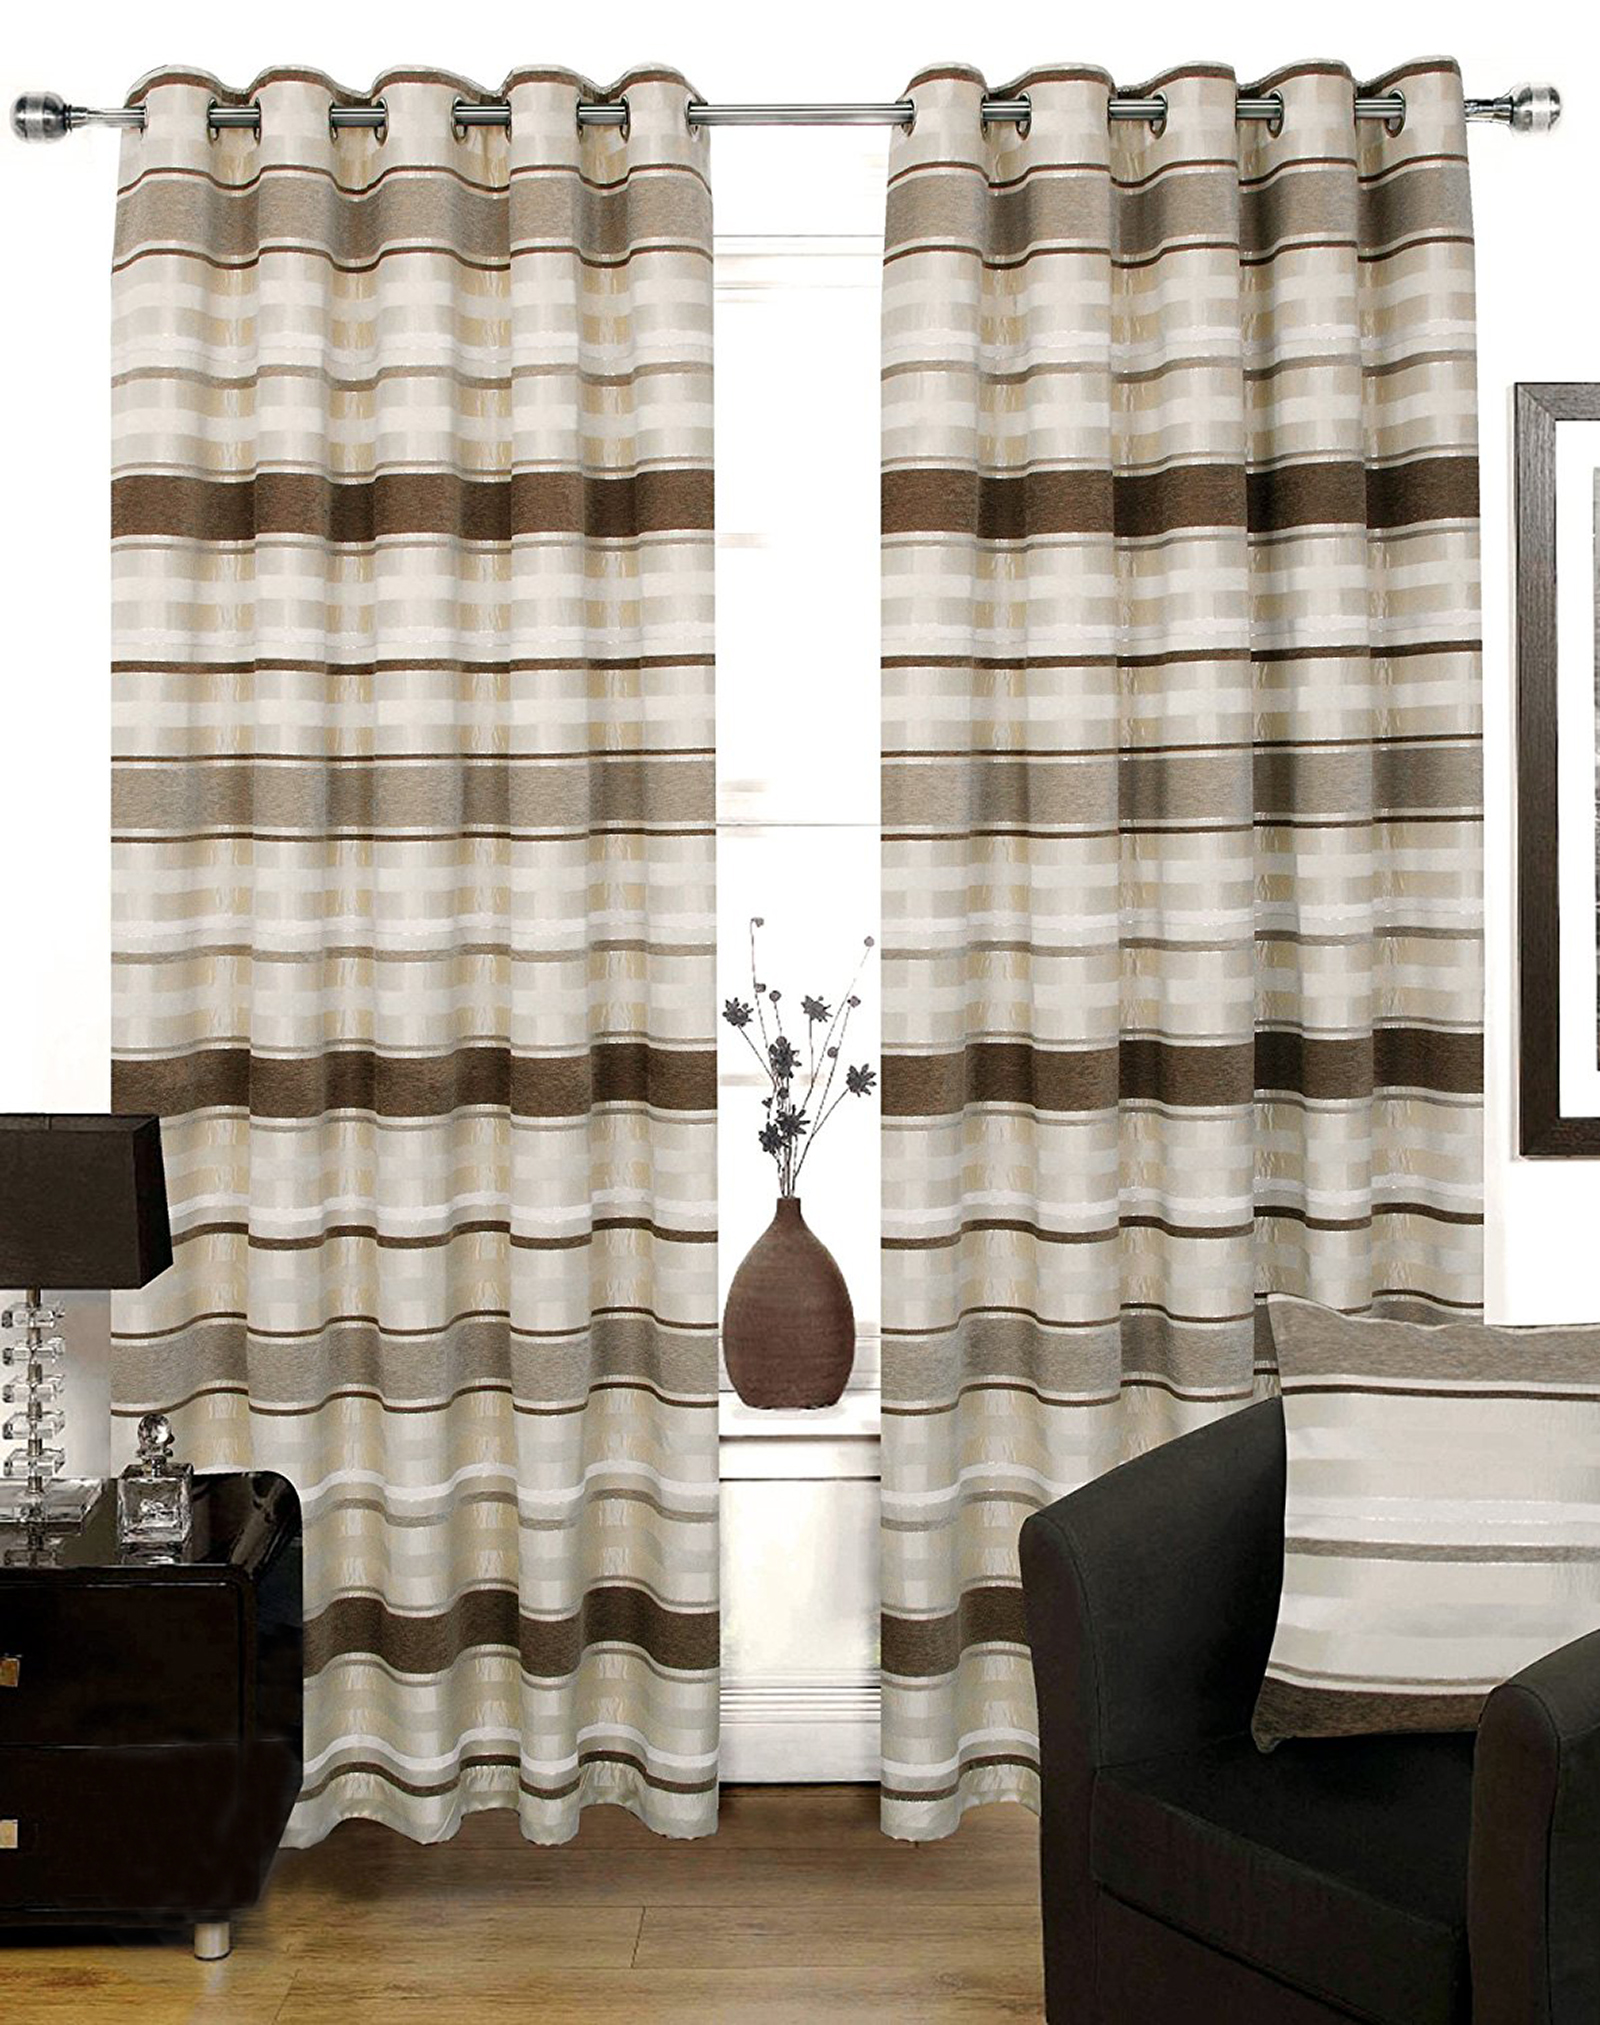 Silk Curtains For Living Room Chenille Amp Faux Silk Curtains Luxury Striped Eyelet Ring Top